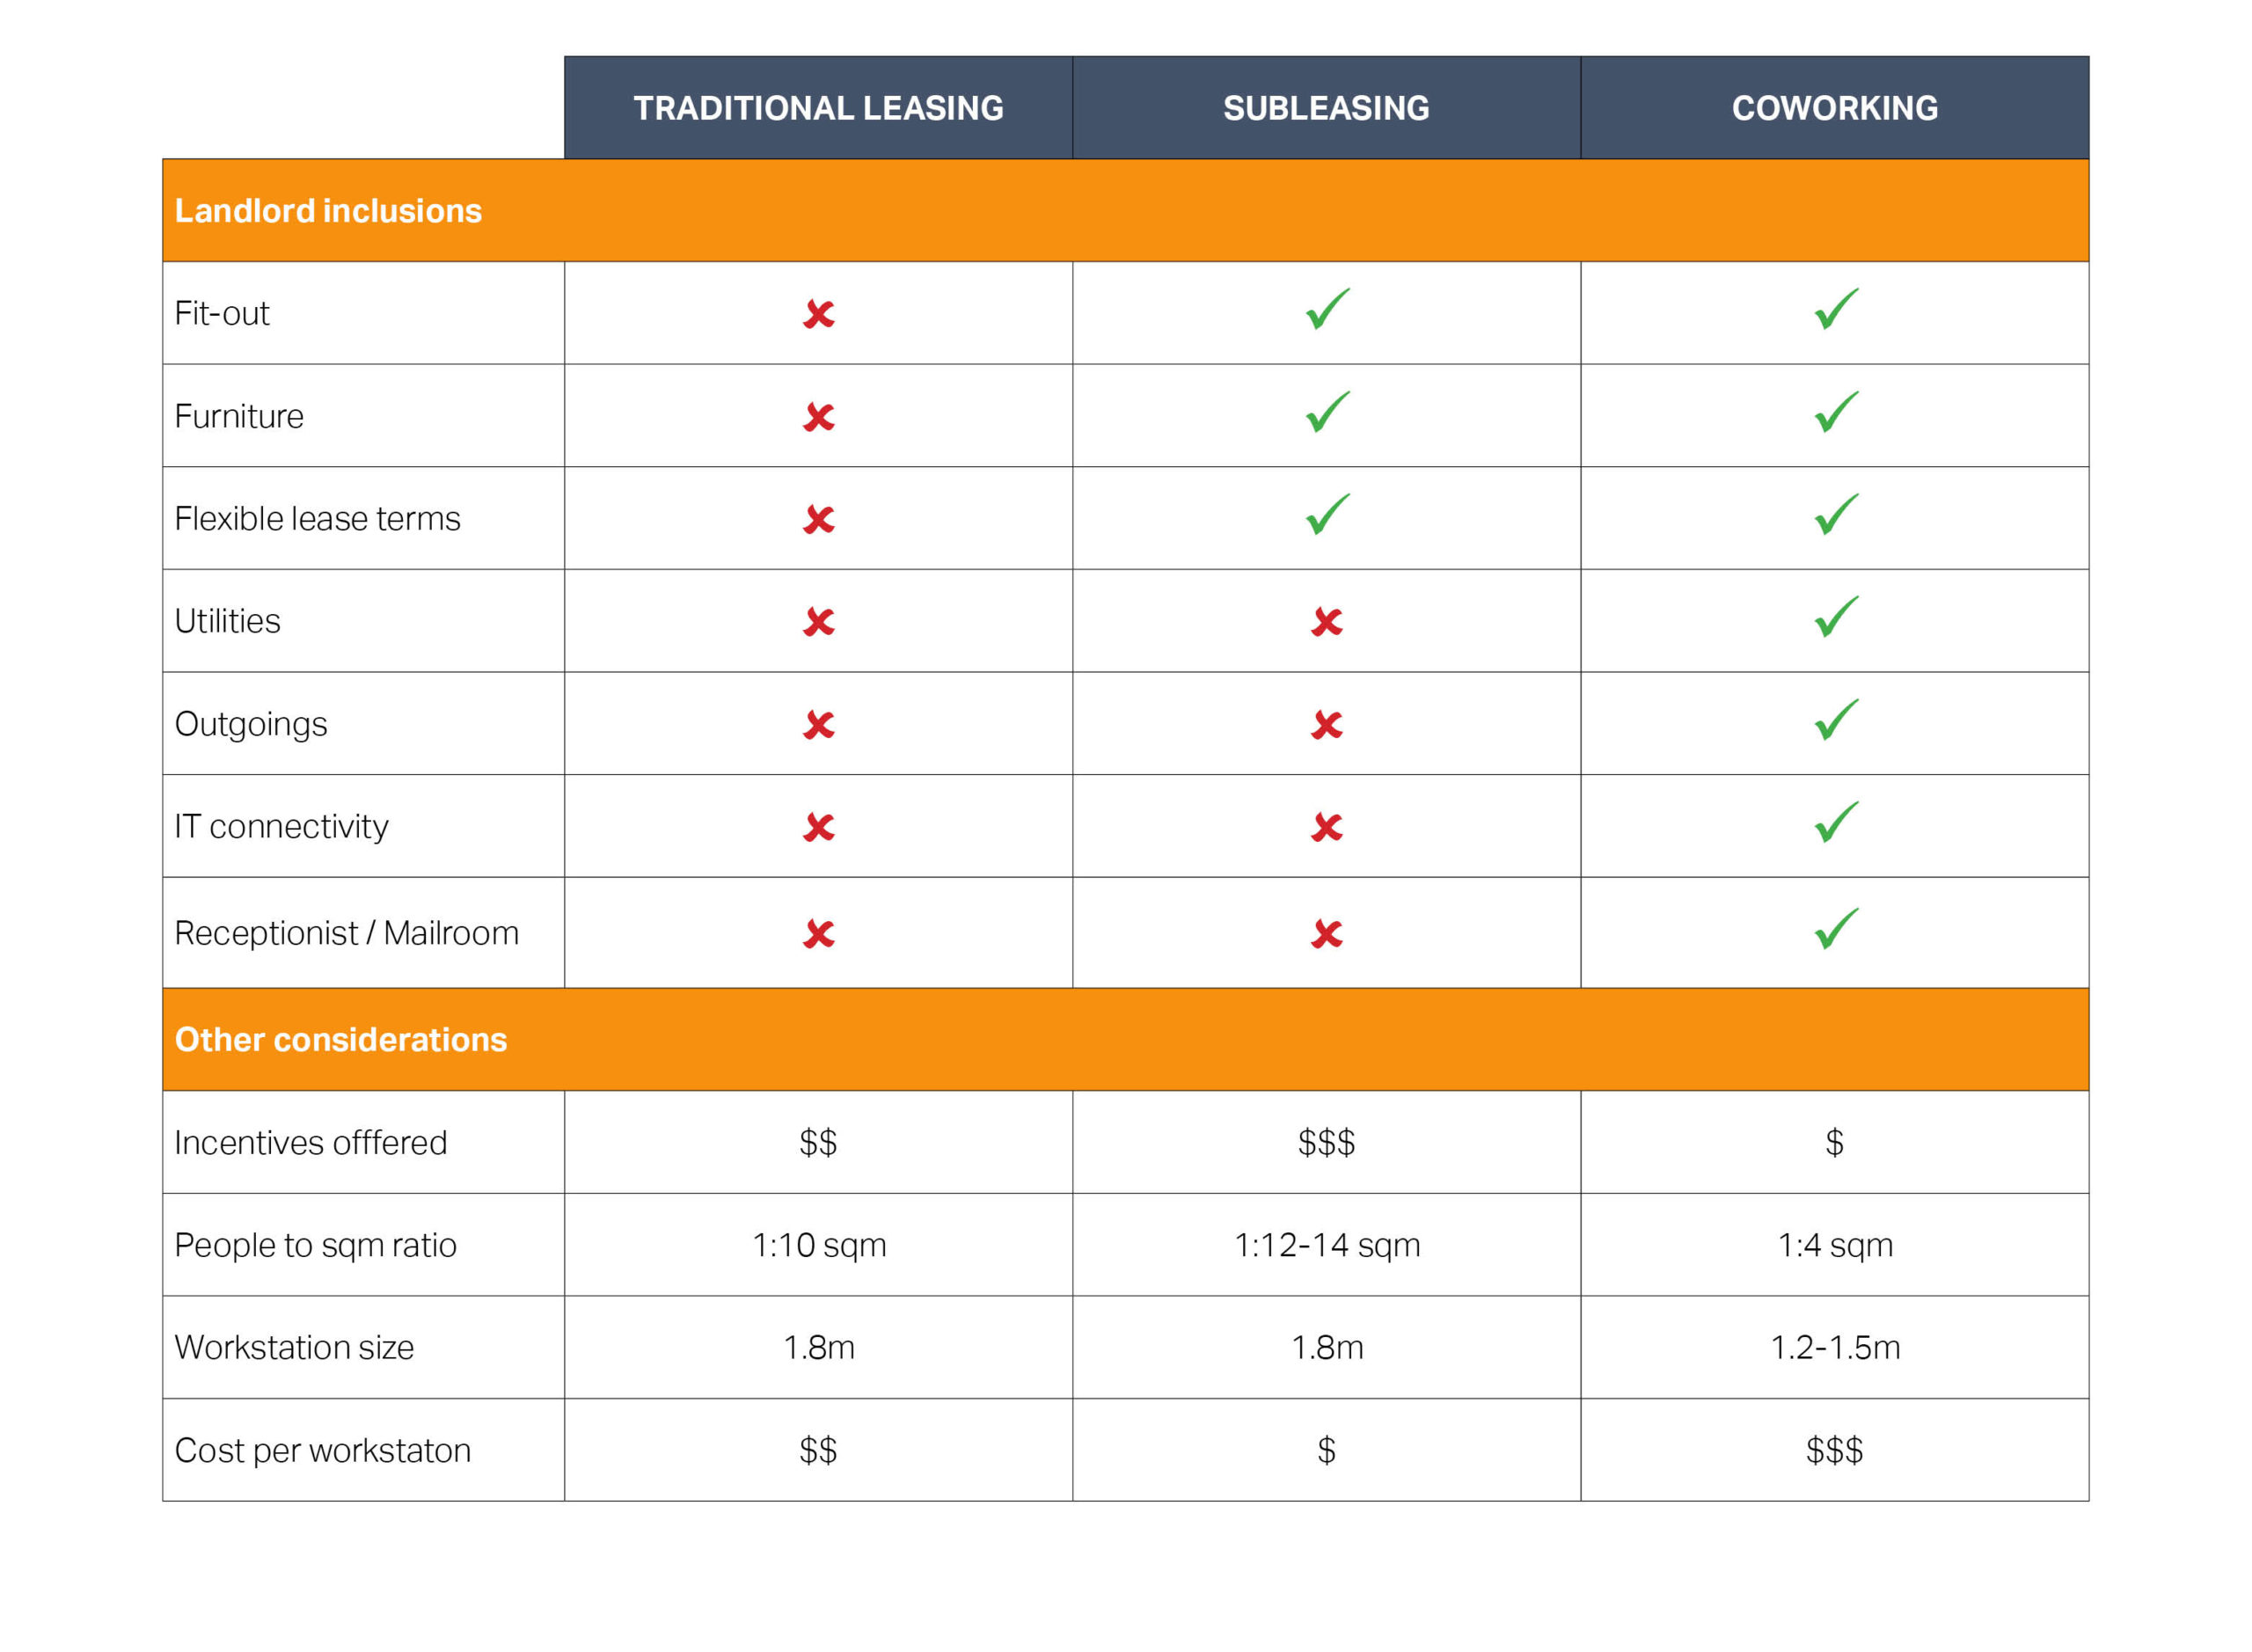 subleasing table of figures to indicate differences between whats included in traditional leasing vs coworking and subleasing